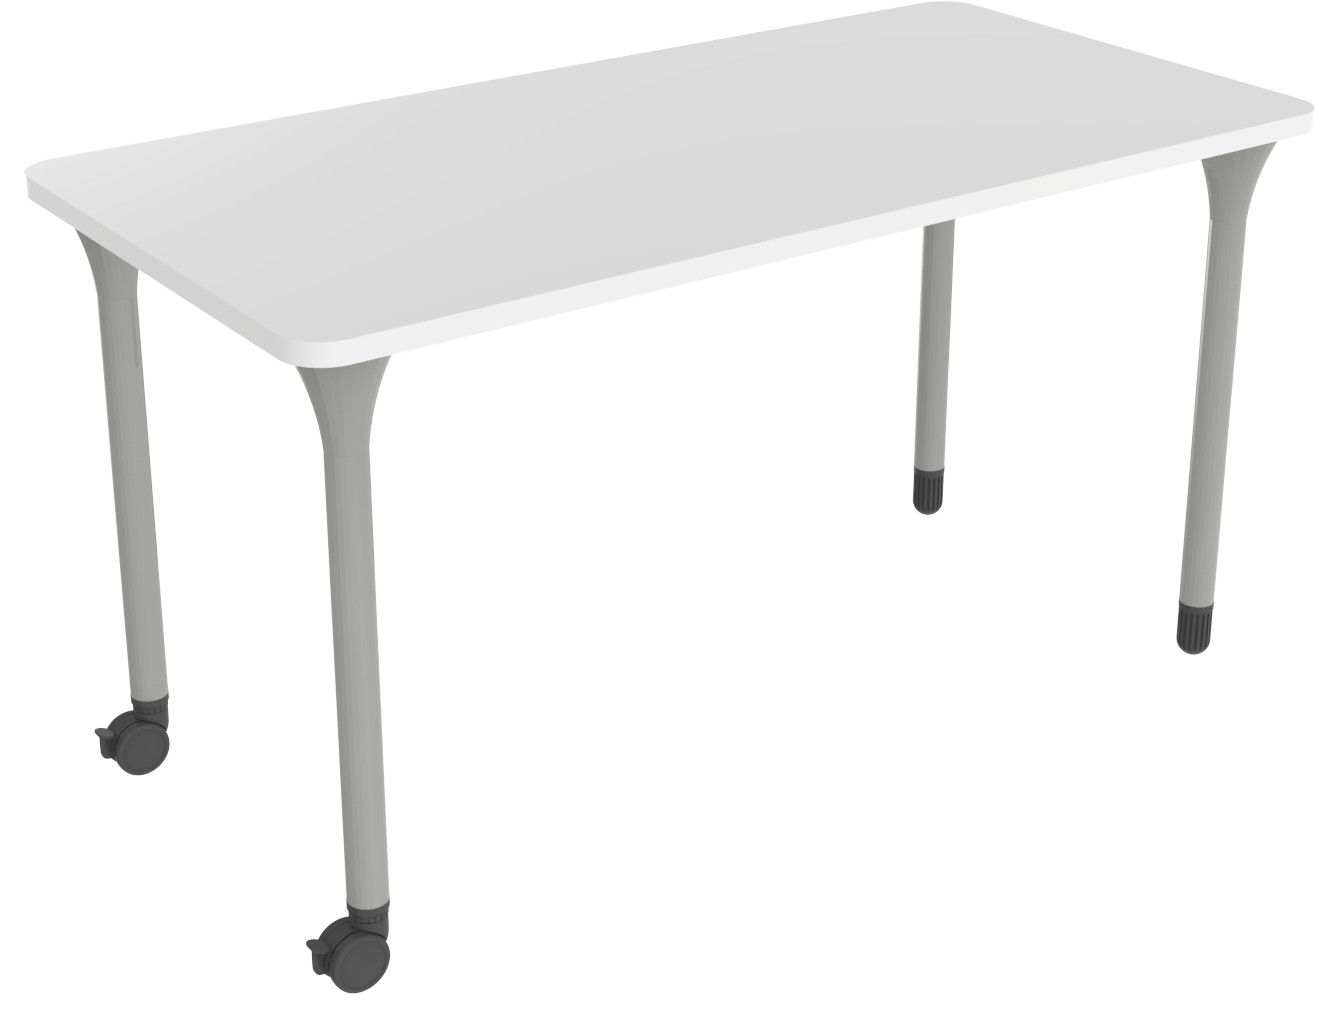 SEBEL ENGAGE DOUBLE TABLE